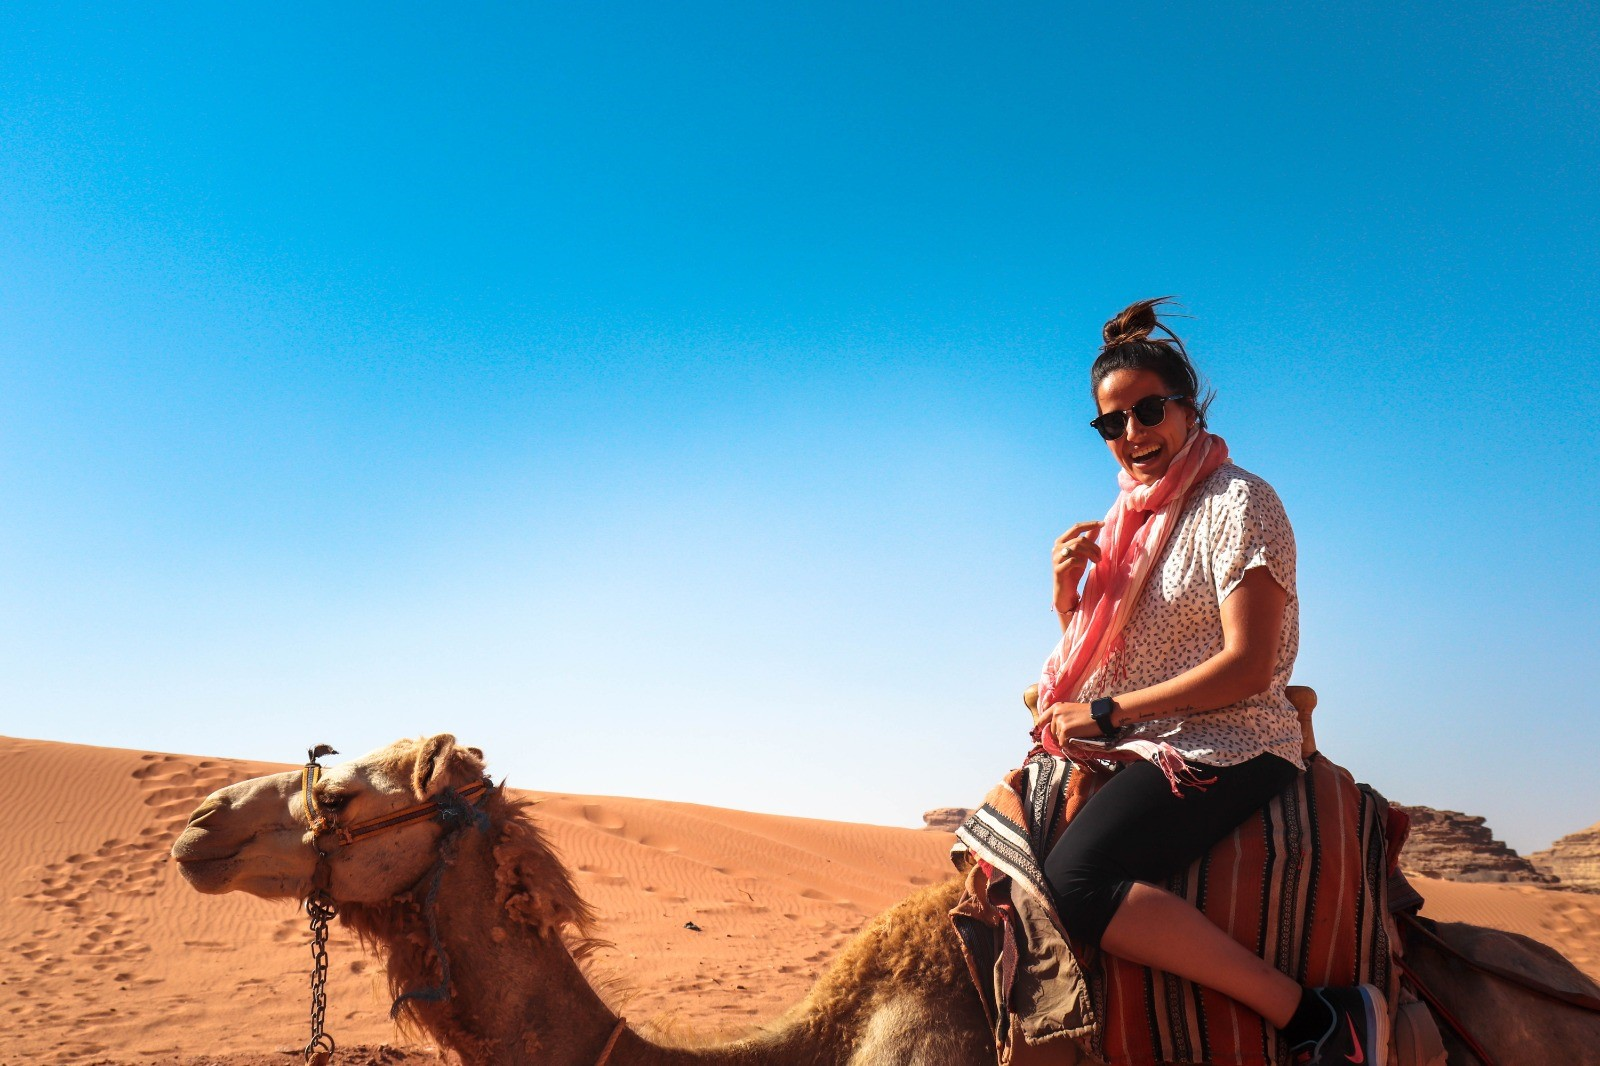 Ah, yes the moment we have all been waiting for: The Camels. They are so amazingly cute. Photo credit: Russo, 2019